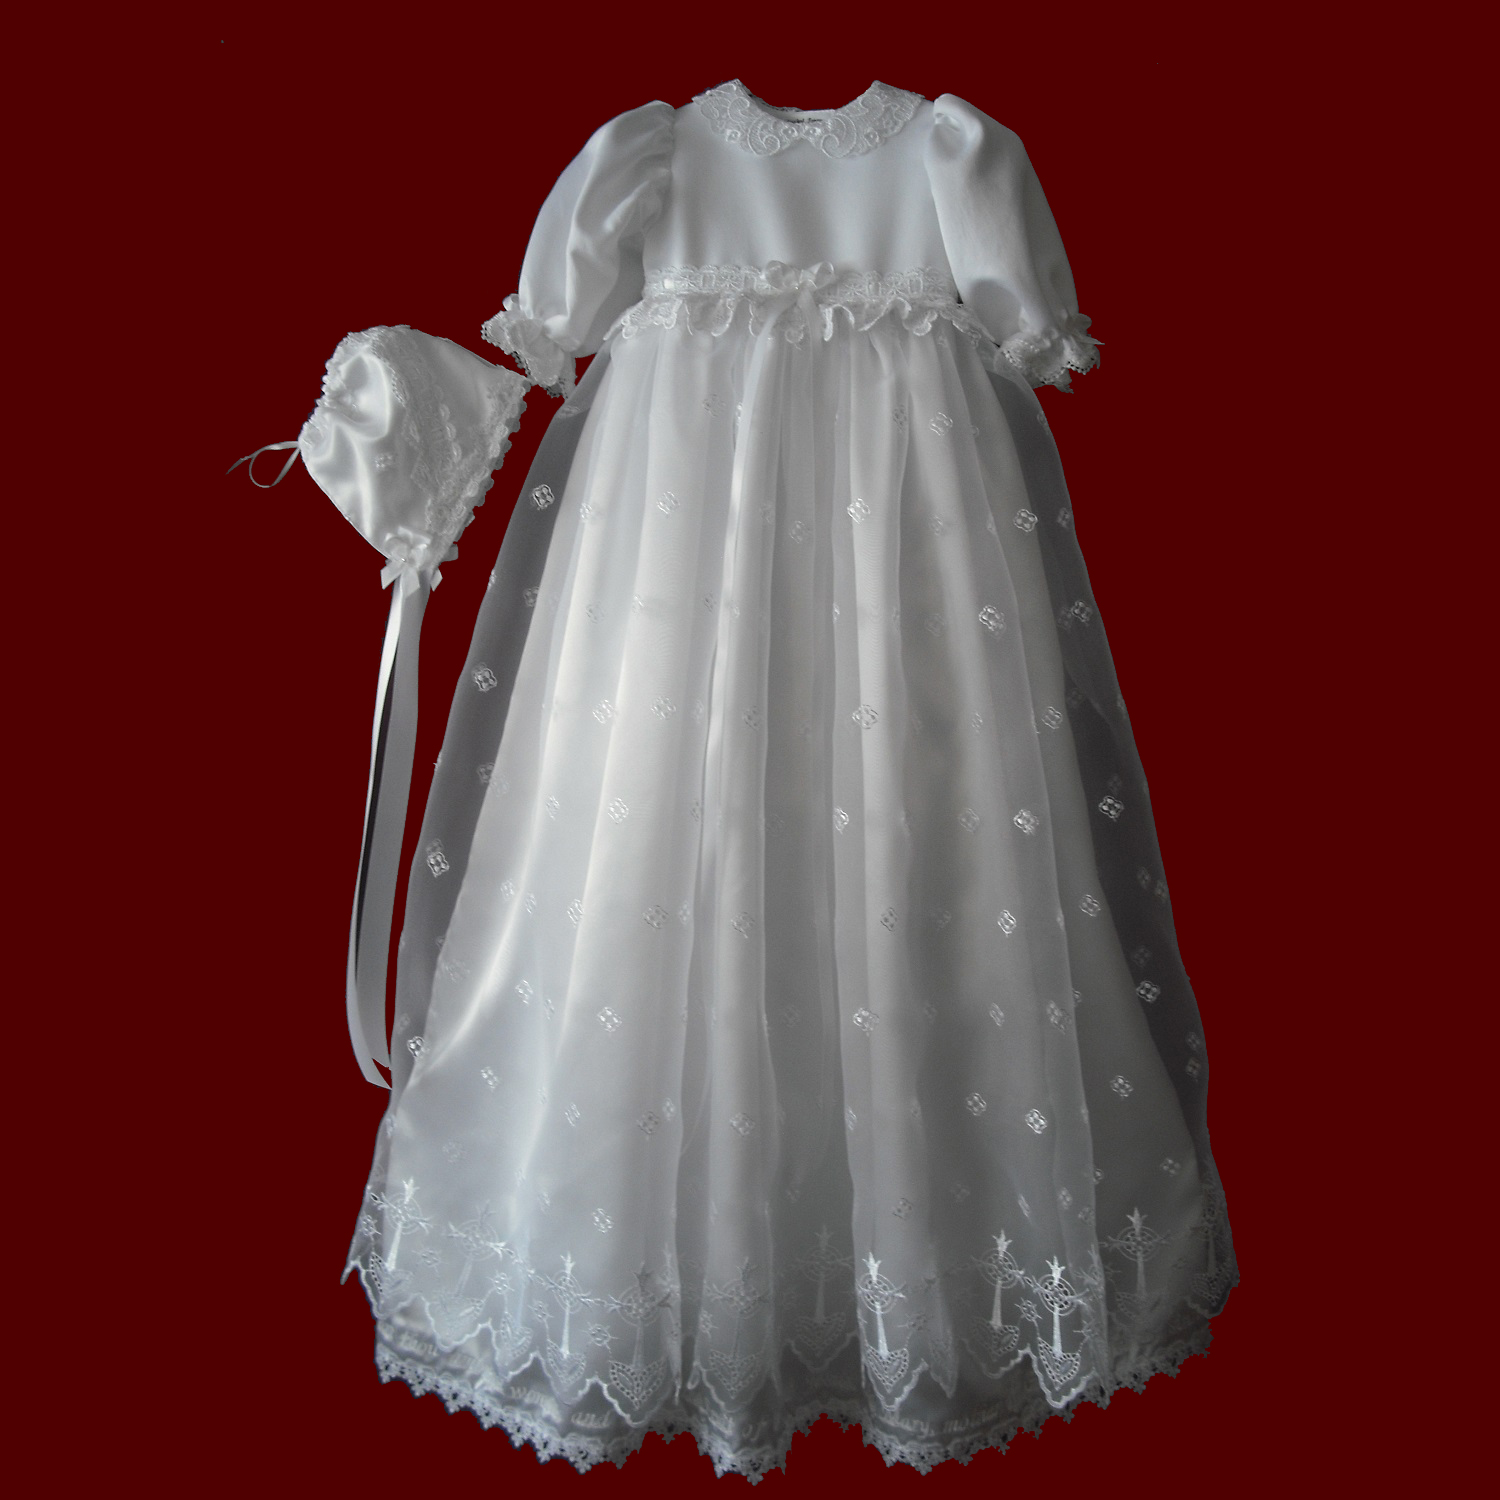 Organza With Crosses & Embroidered Hail Mary Prayer Gown